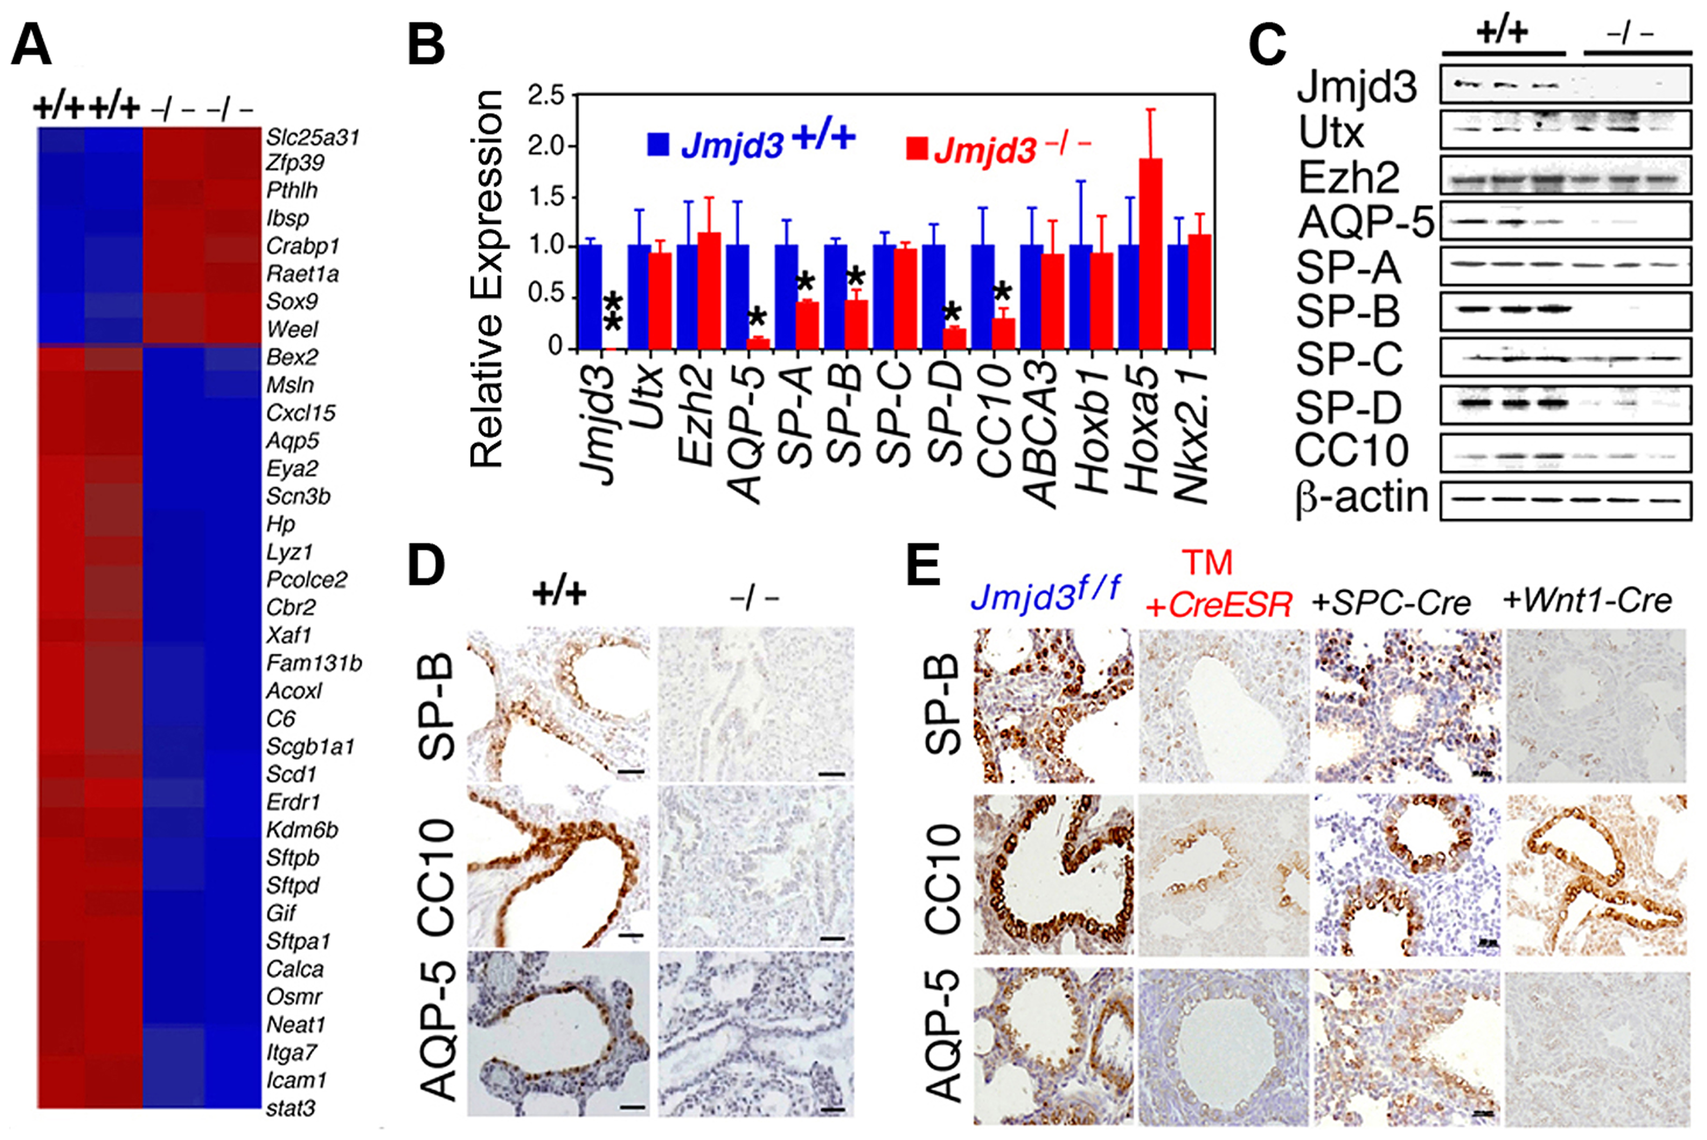 Jmjd3 regulates the expression of genetic markers of lung development.